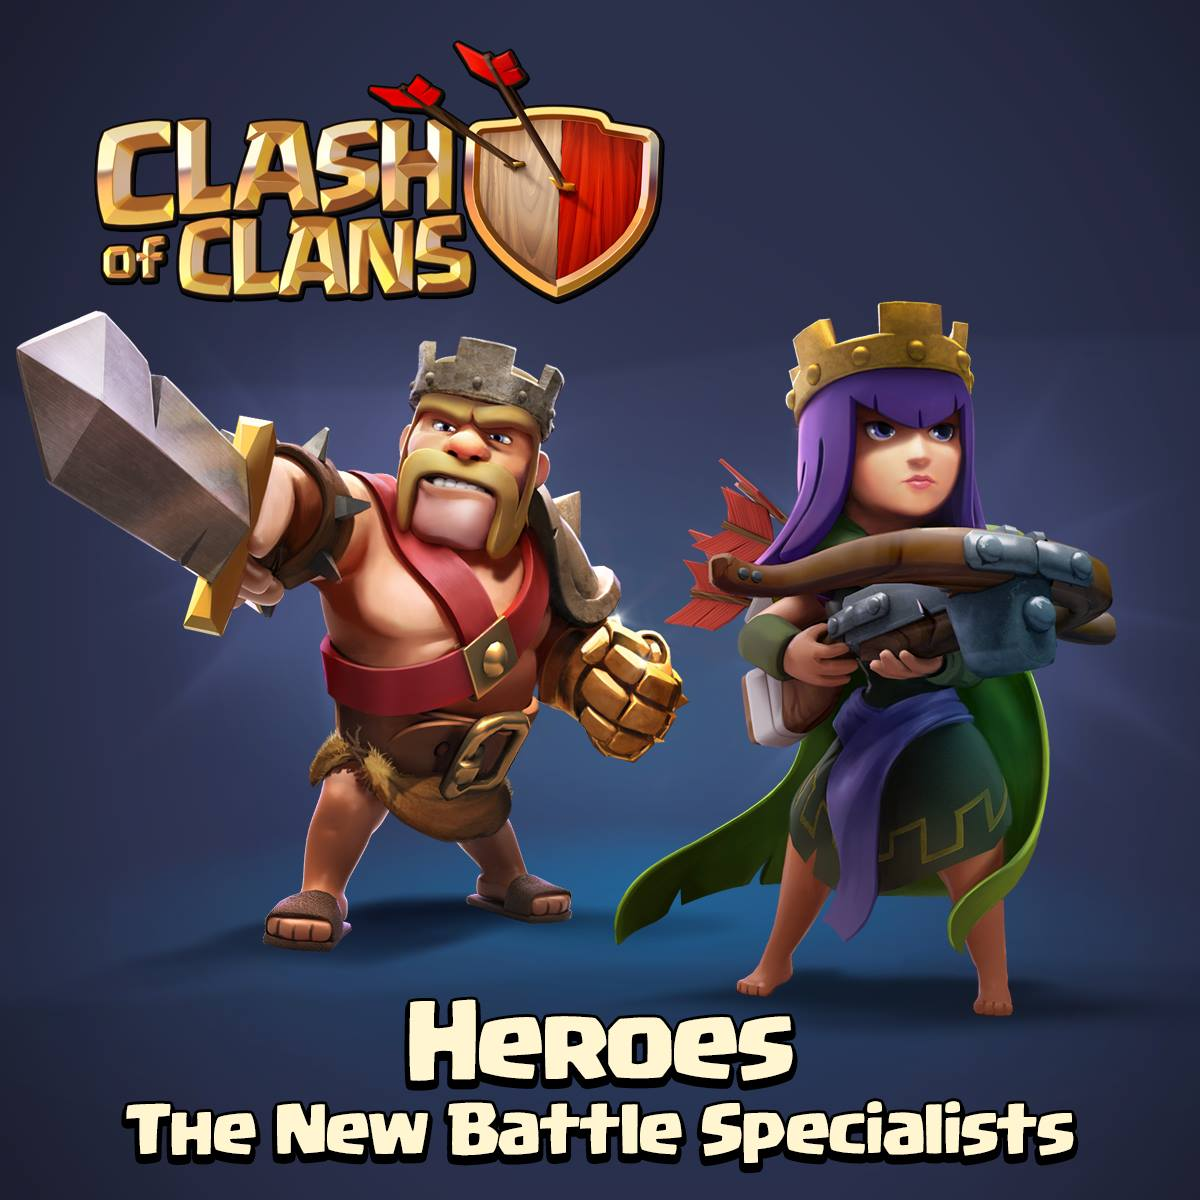 Heroes - The New Battle Specialists